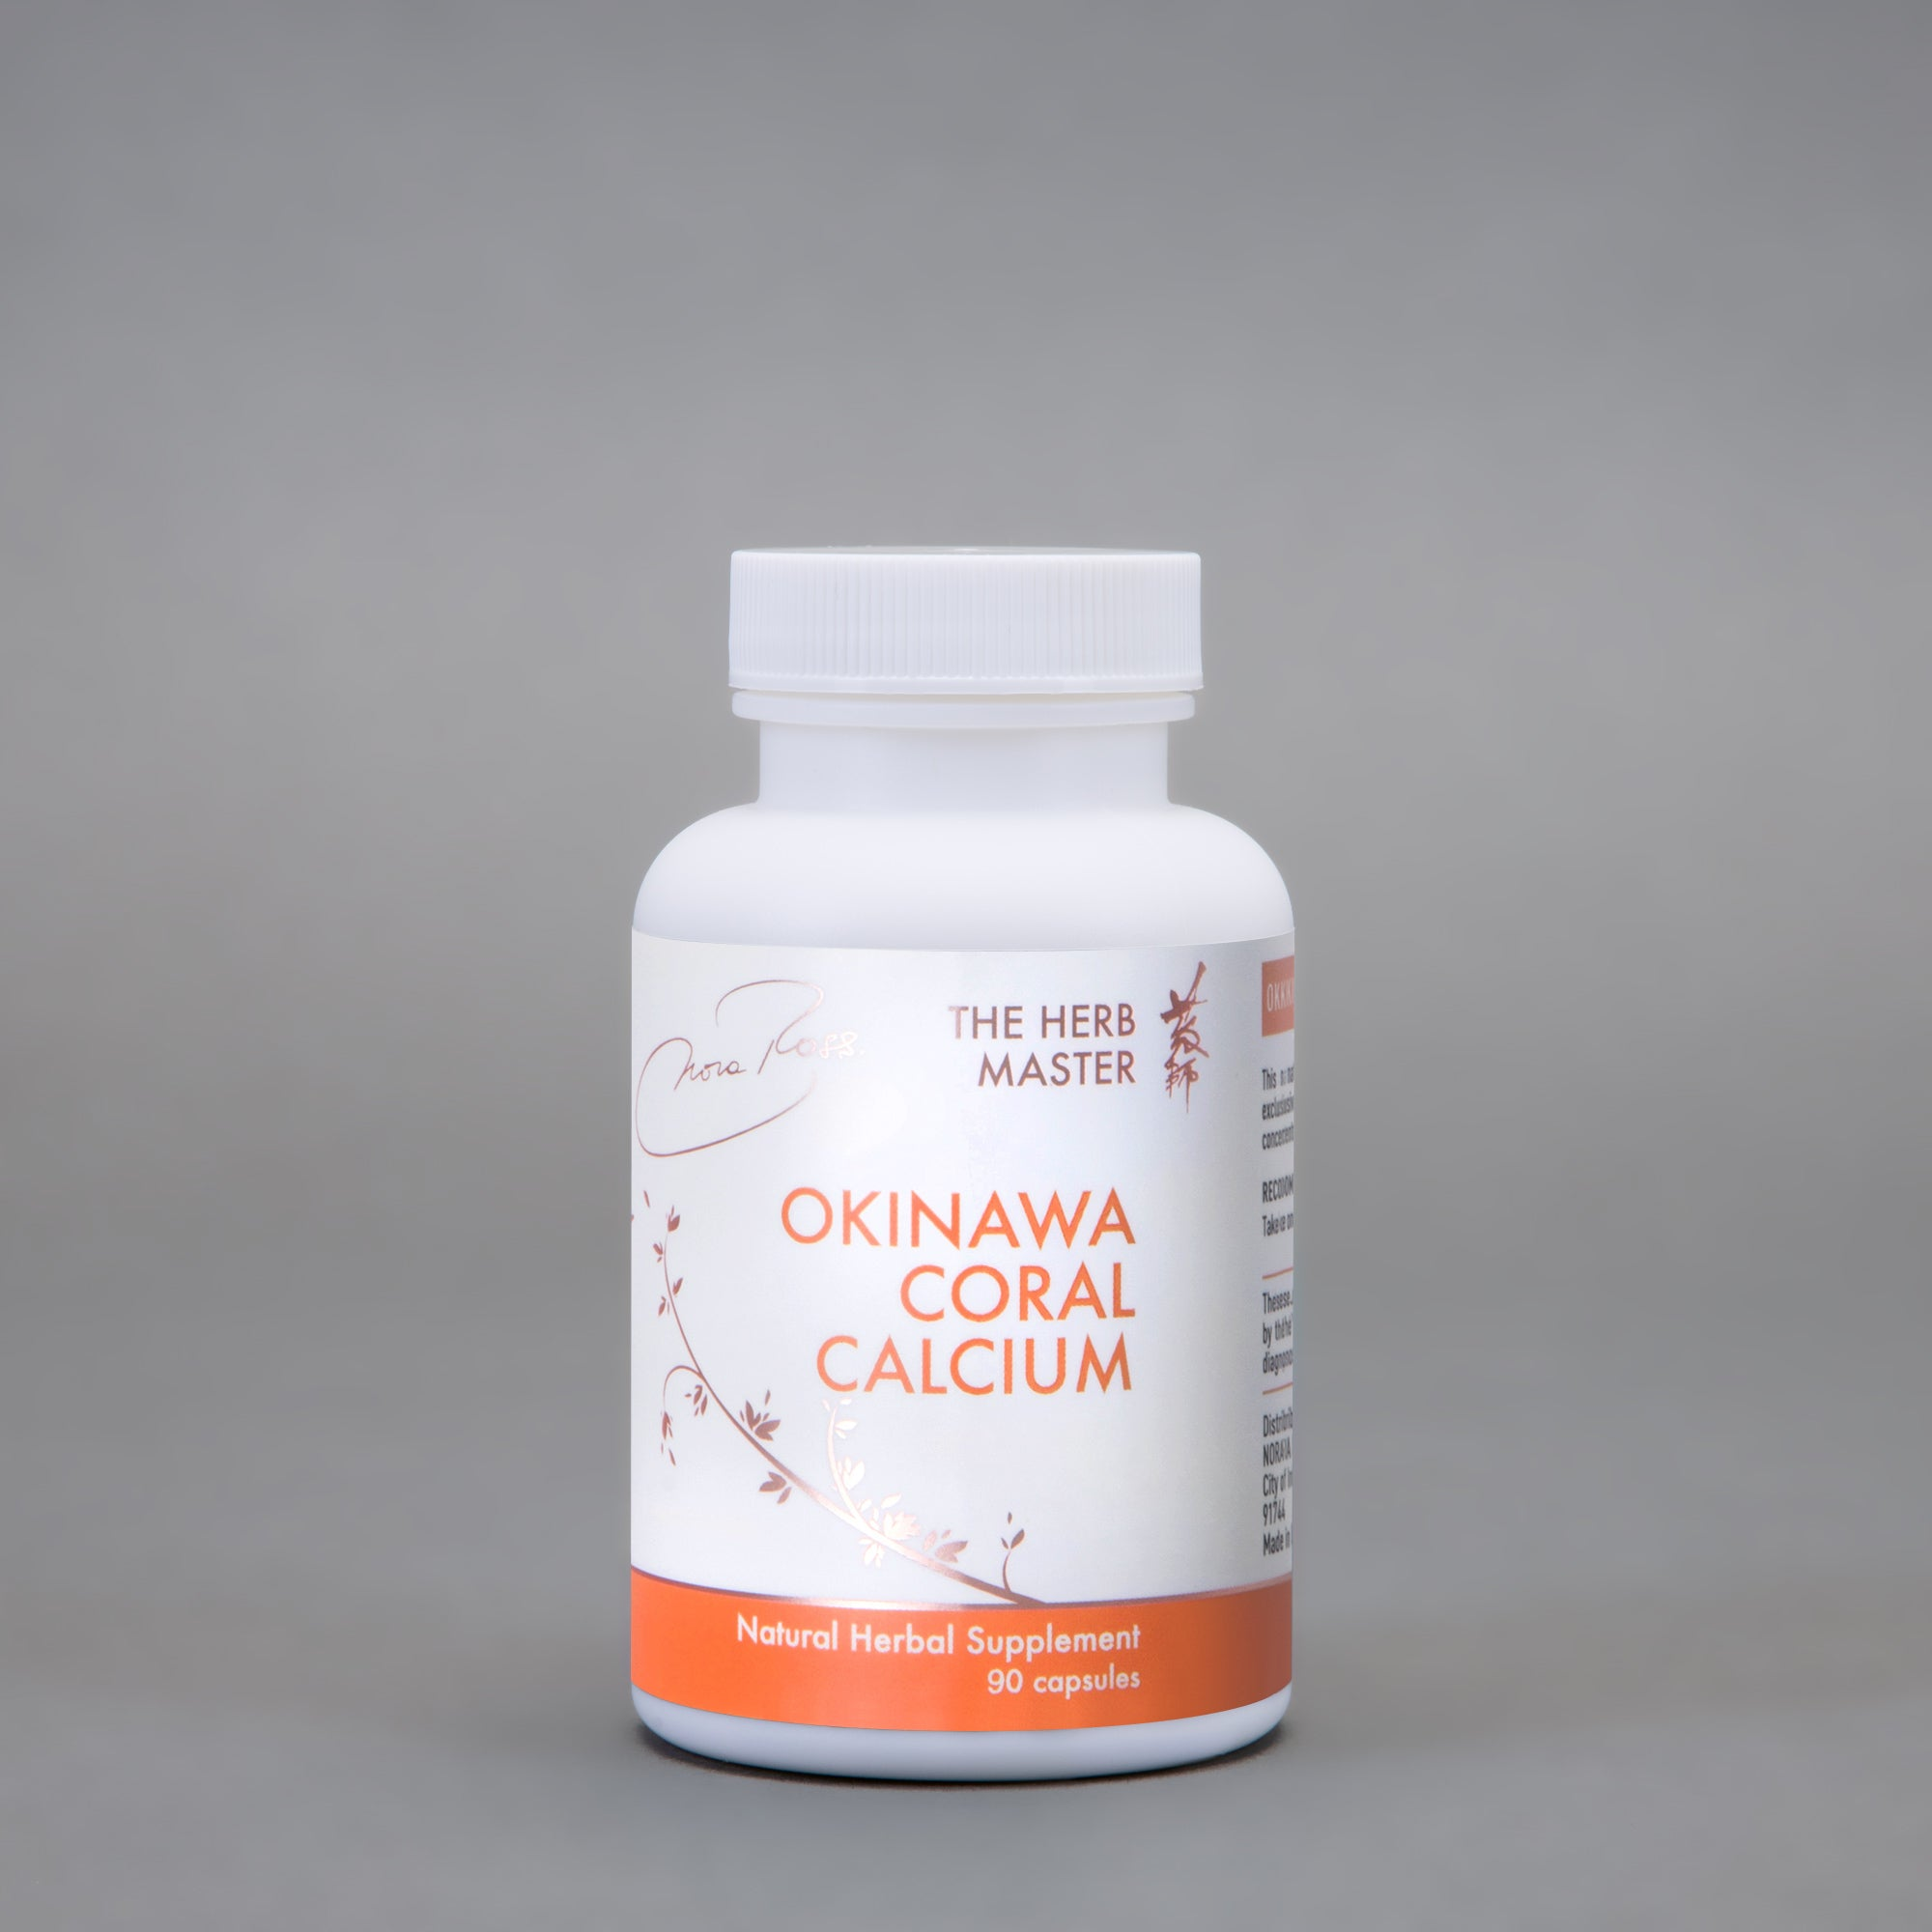 Okinawa Coral Calcium – Easy to Take, Designed for Women, High Quality Calcium with Vitamin D and Magnesium by Nora Ross